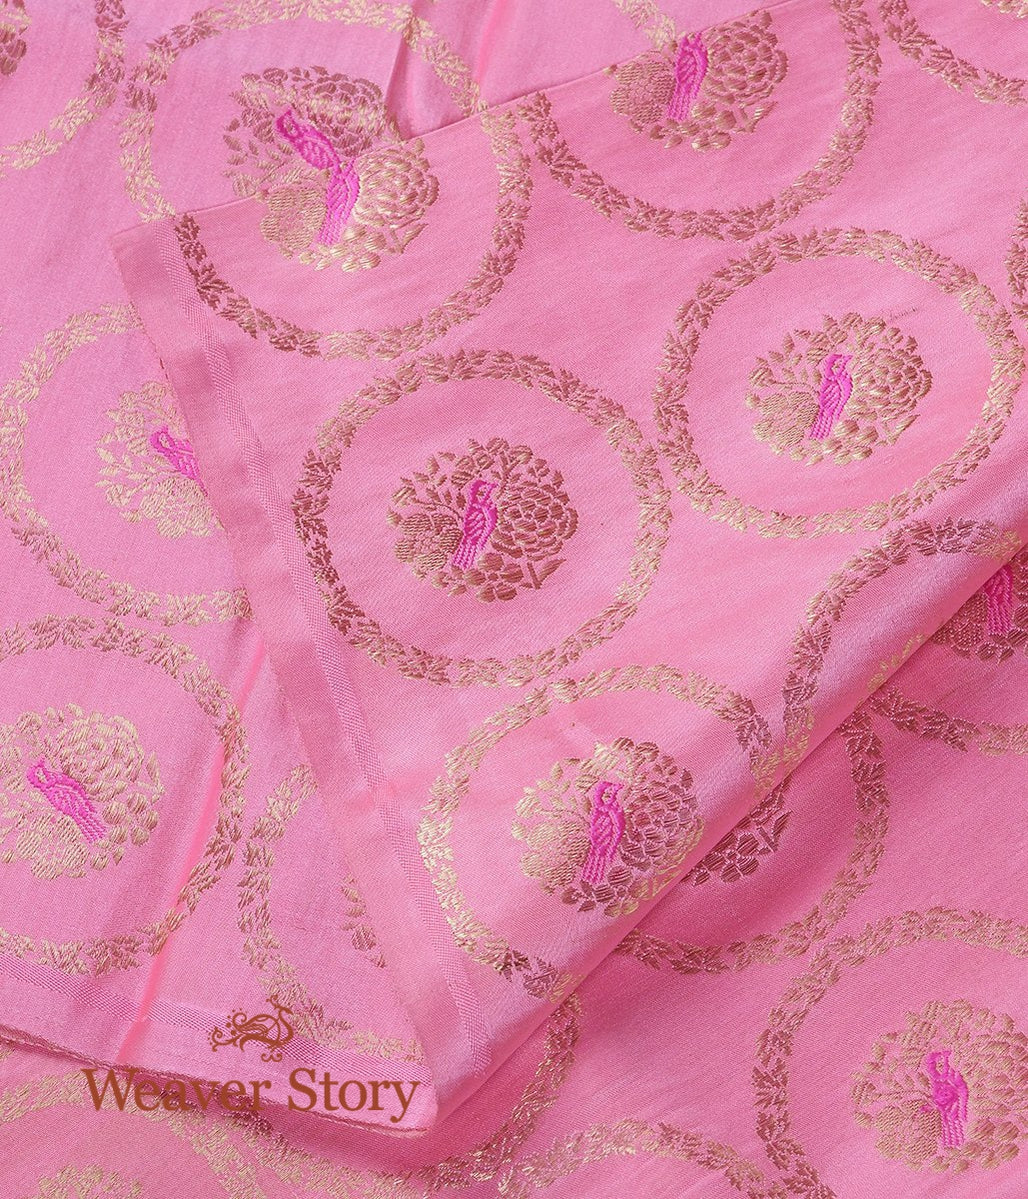 Handwoven Pink Pure Satin Fabric with Bird Motifs